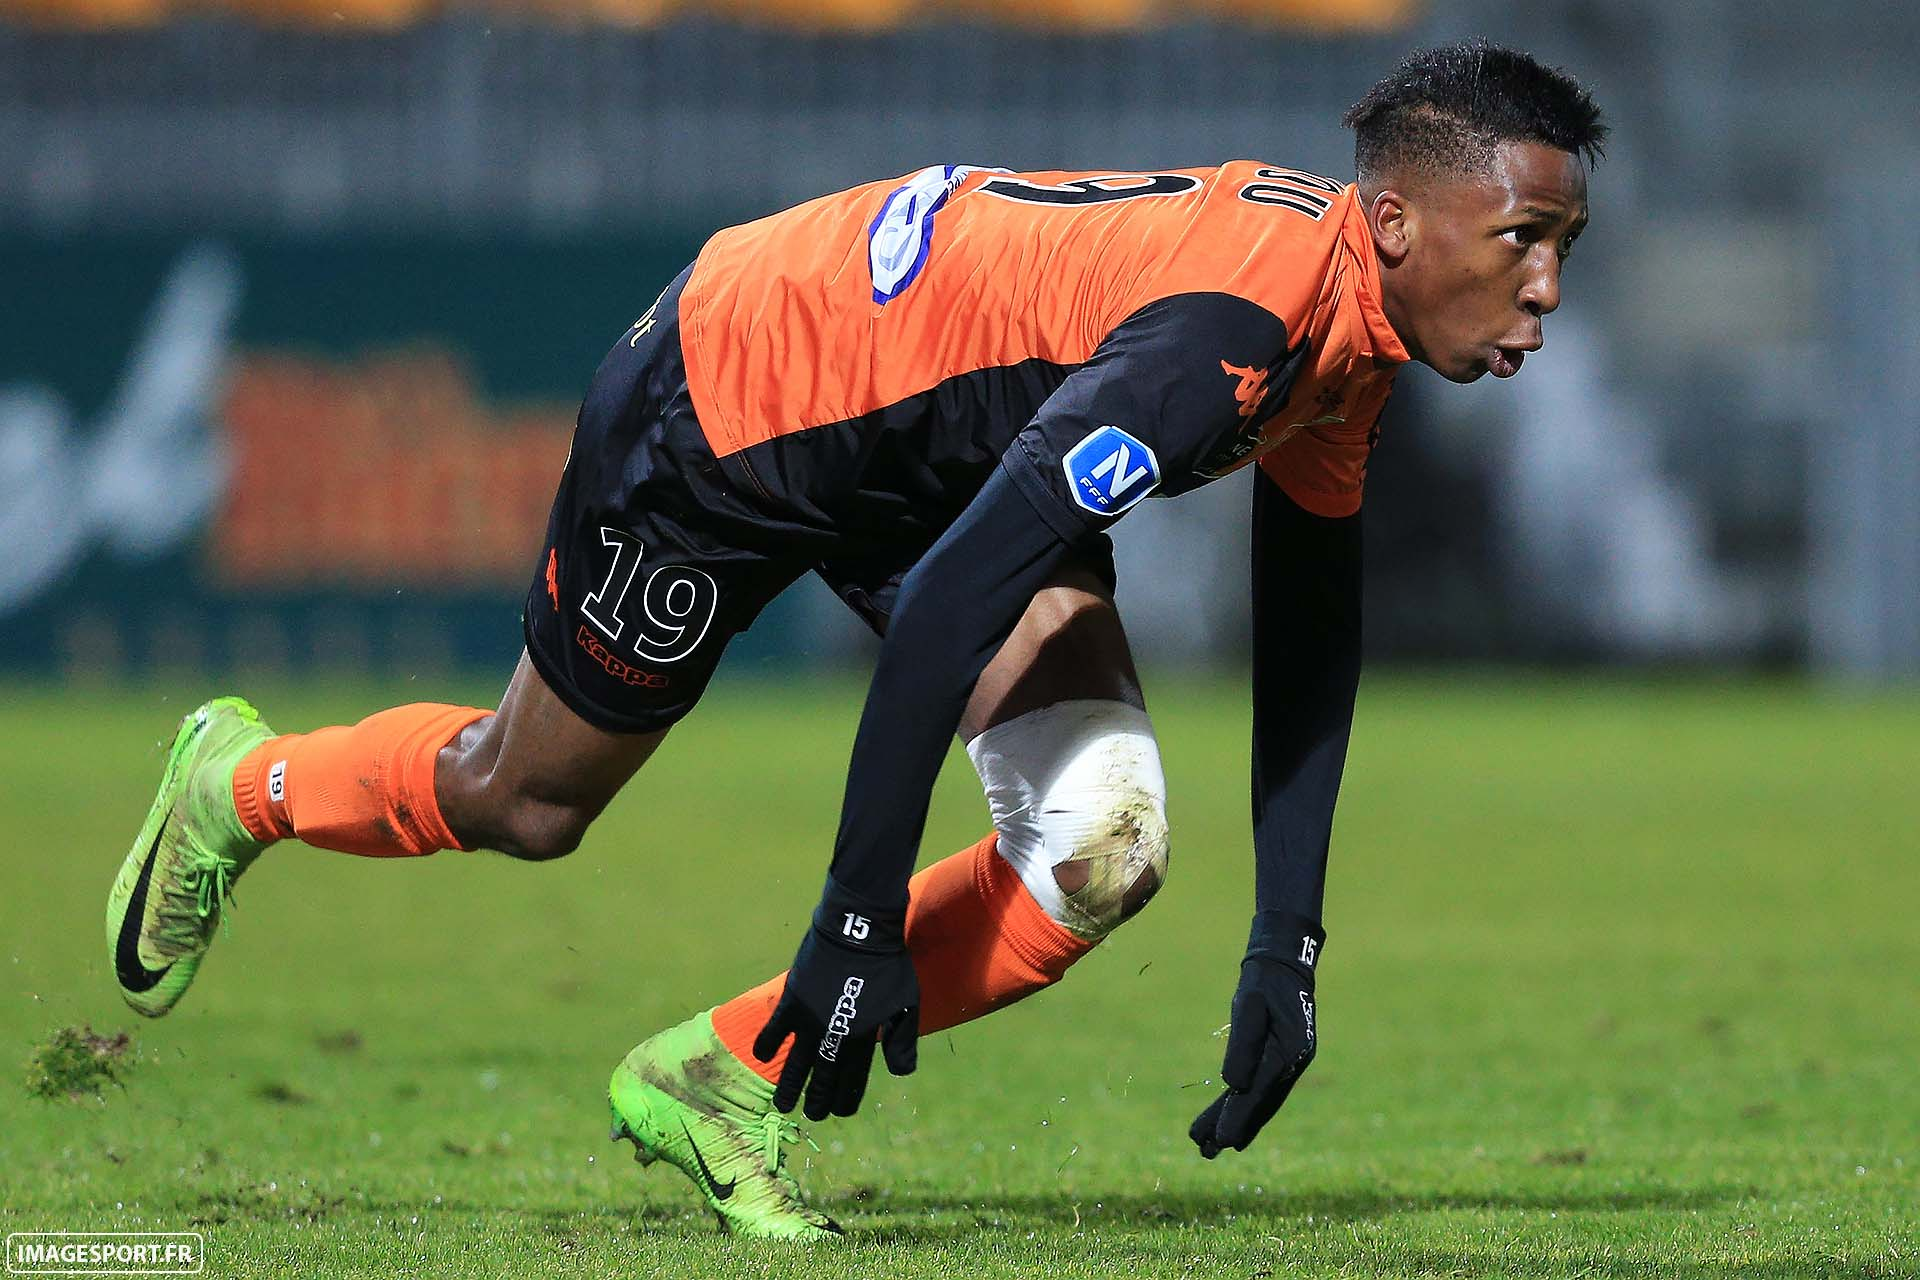 36-stade-lavallois-imagesport-neyou